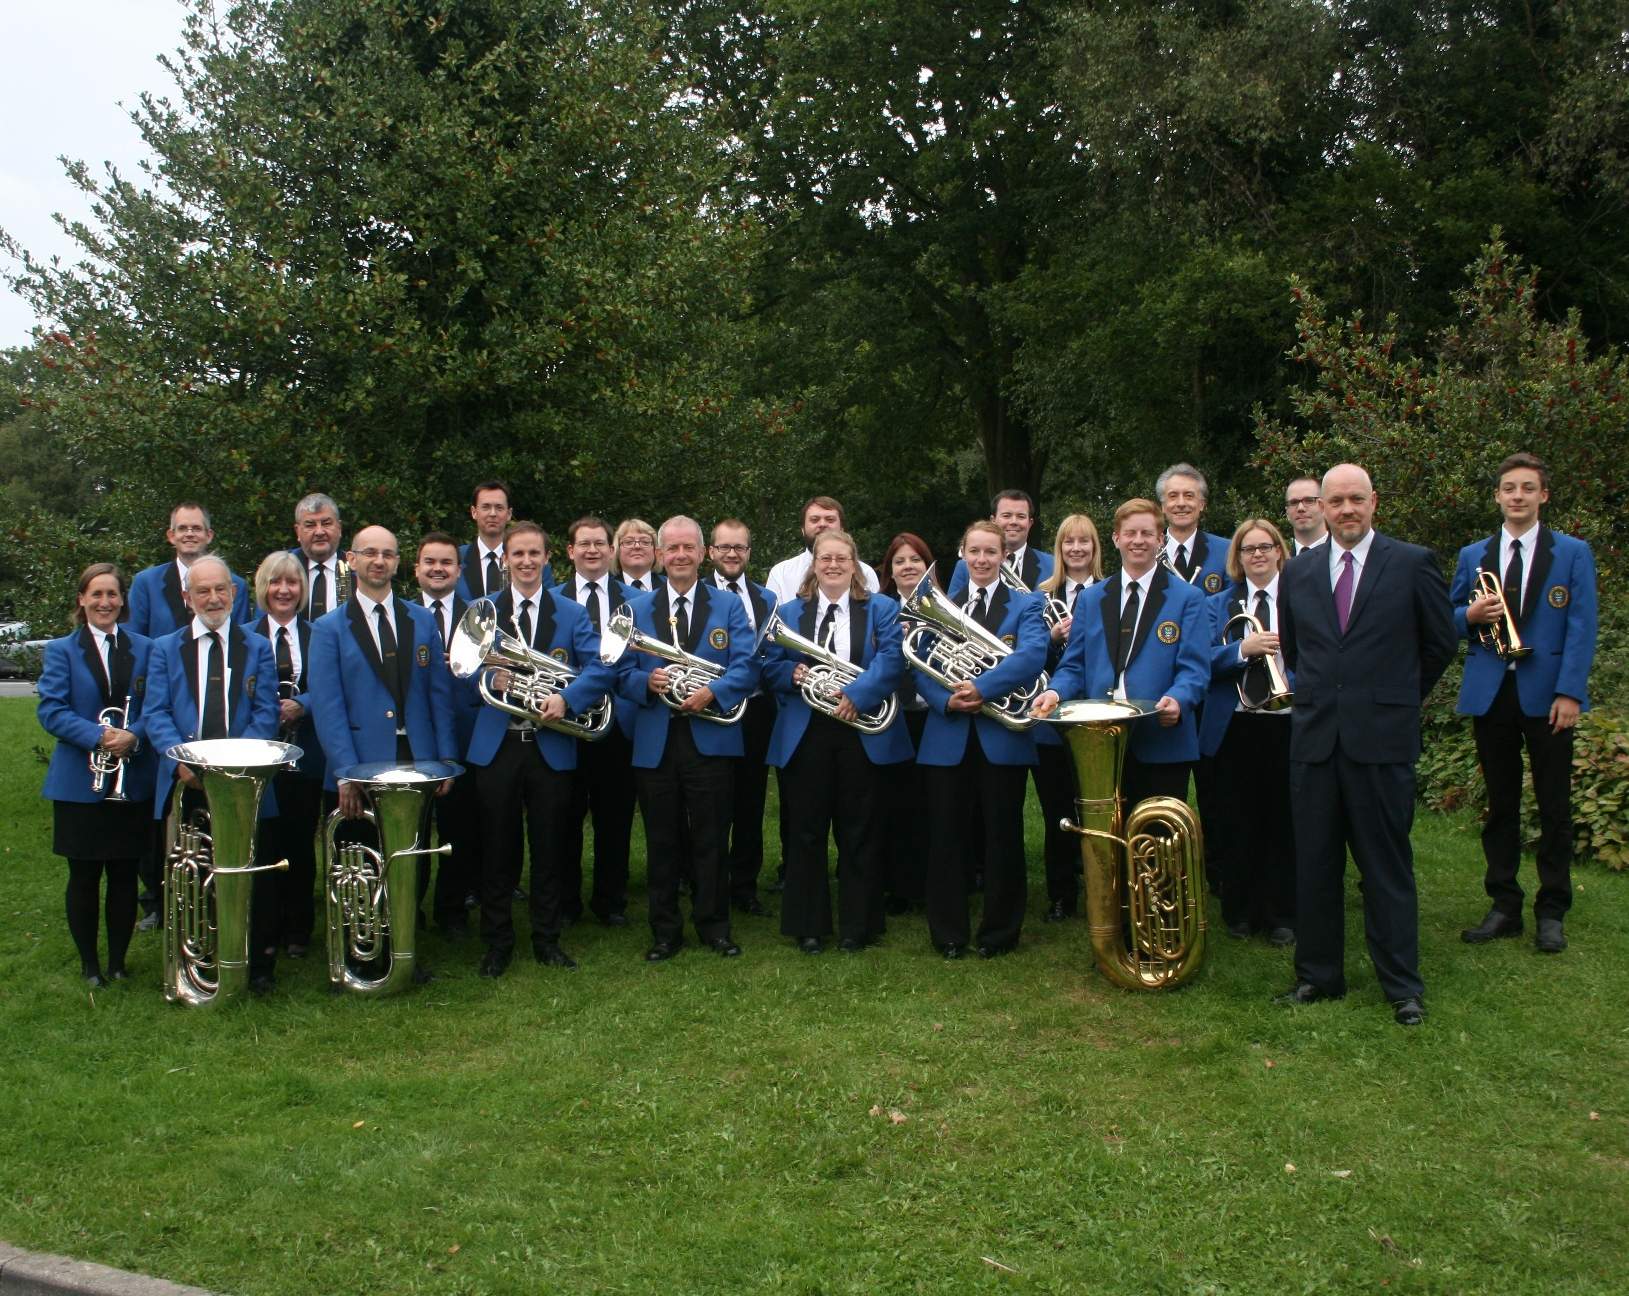 Brass Band Concert in the Park